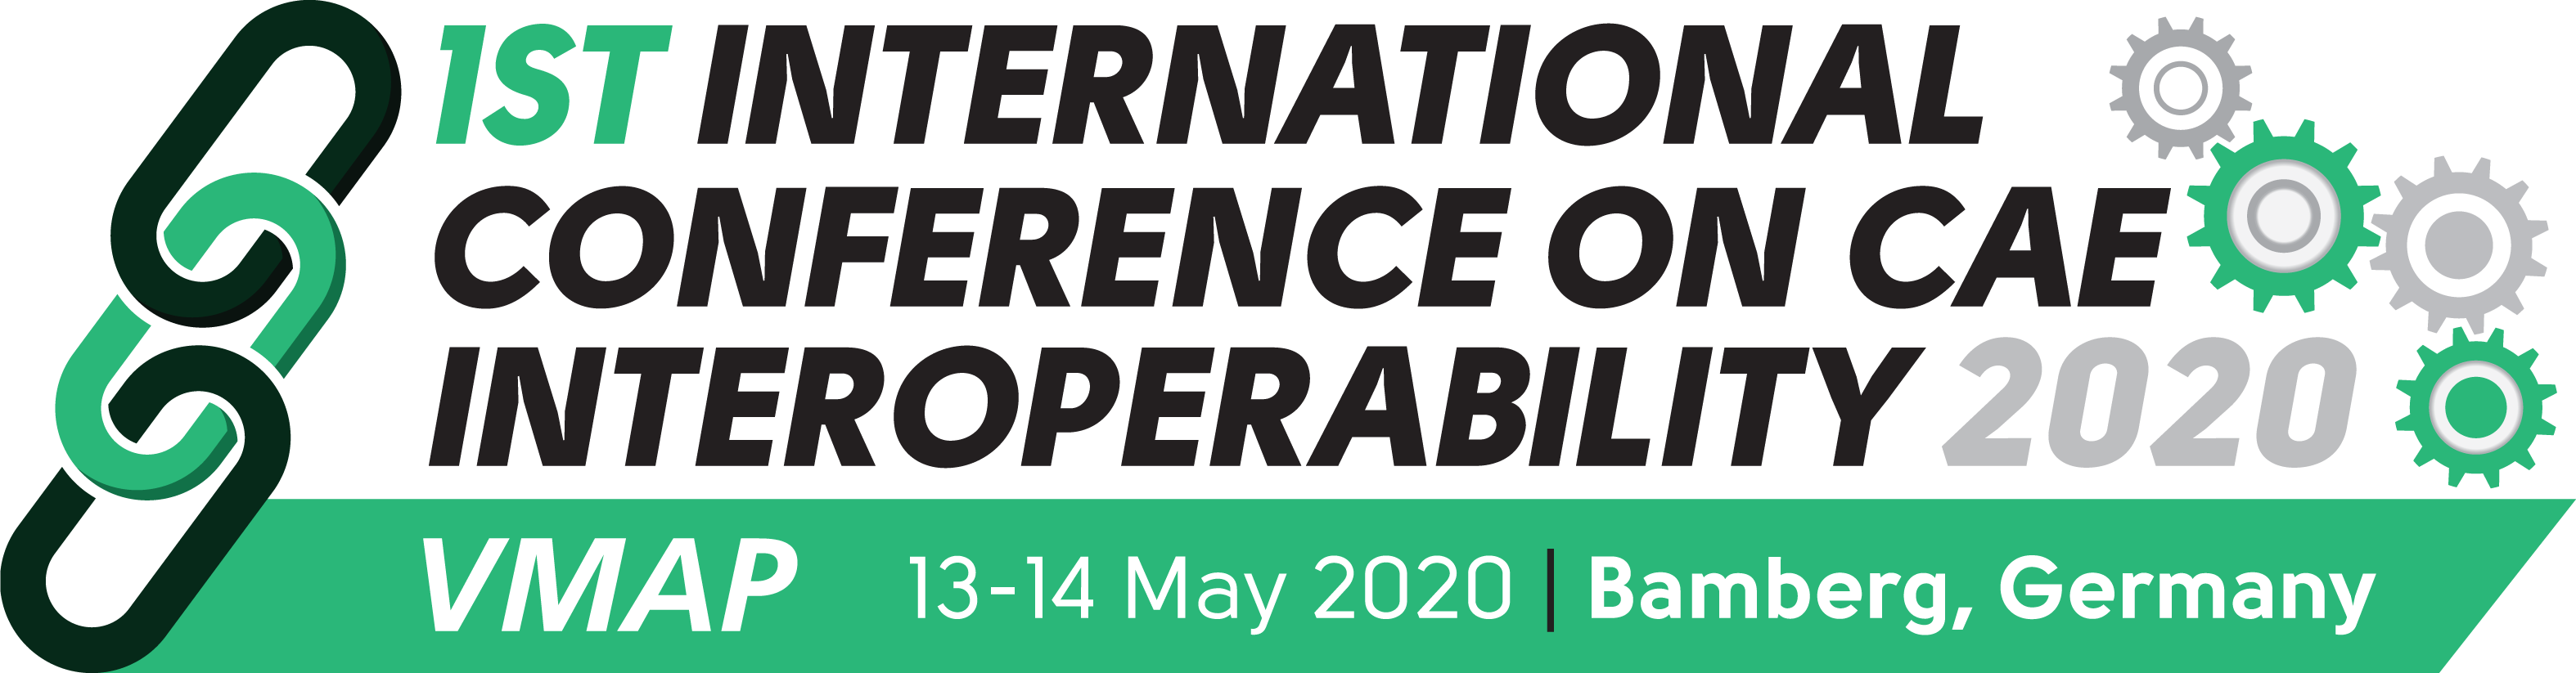 International Conference CAE Interoperability 2020